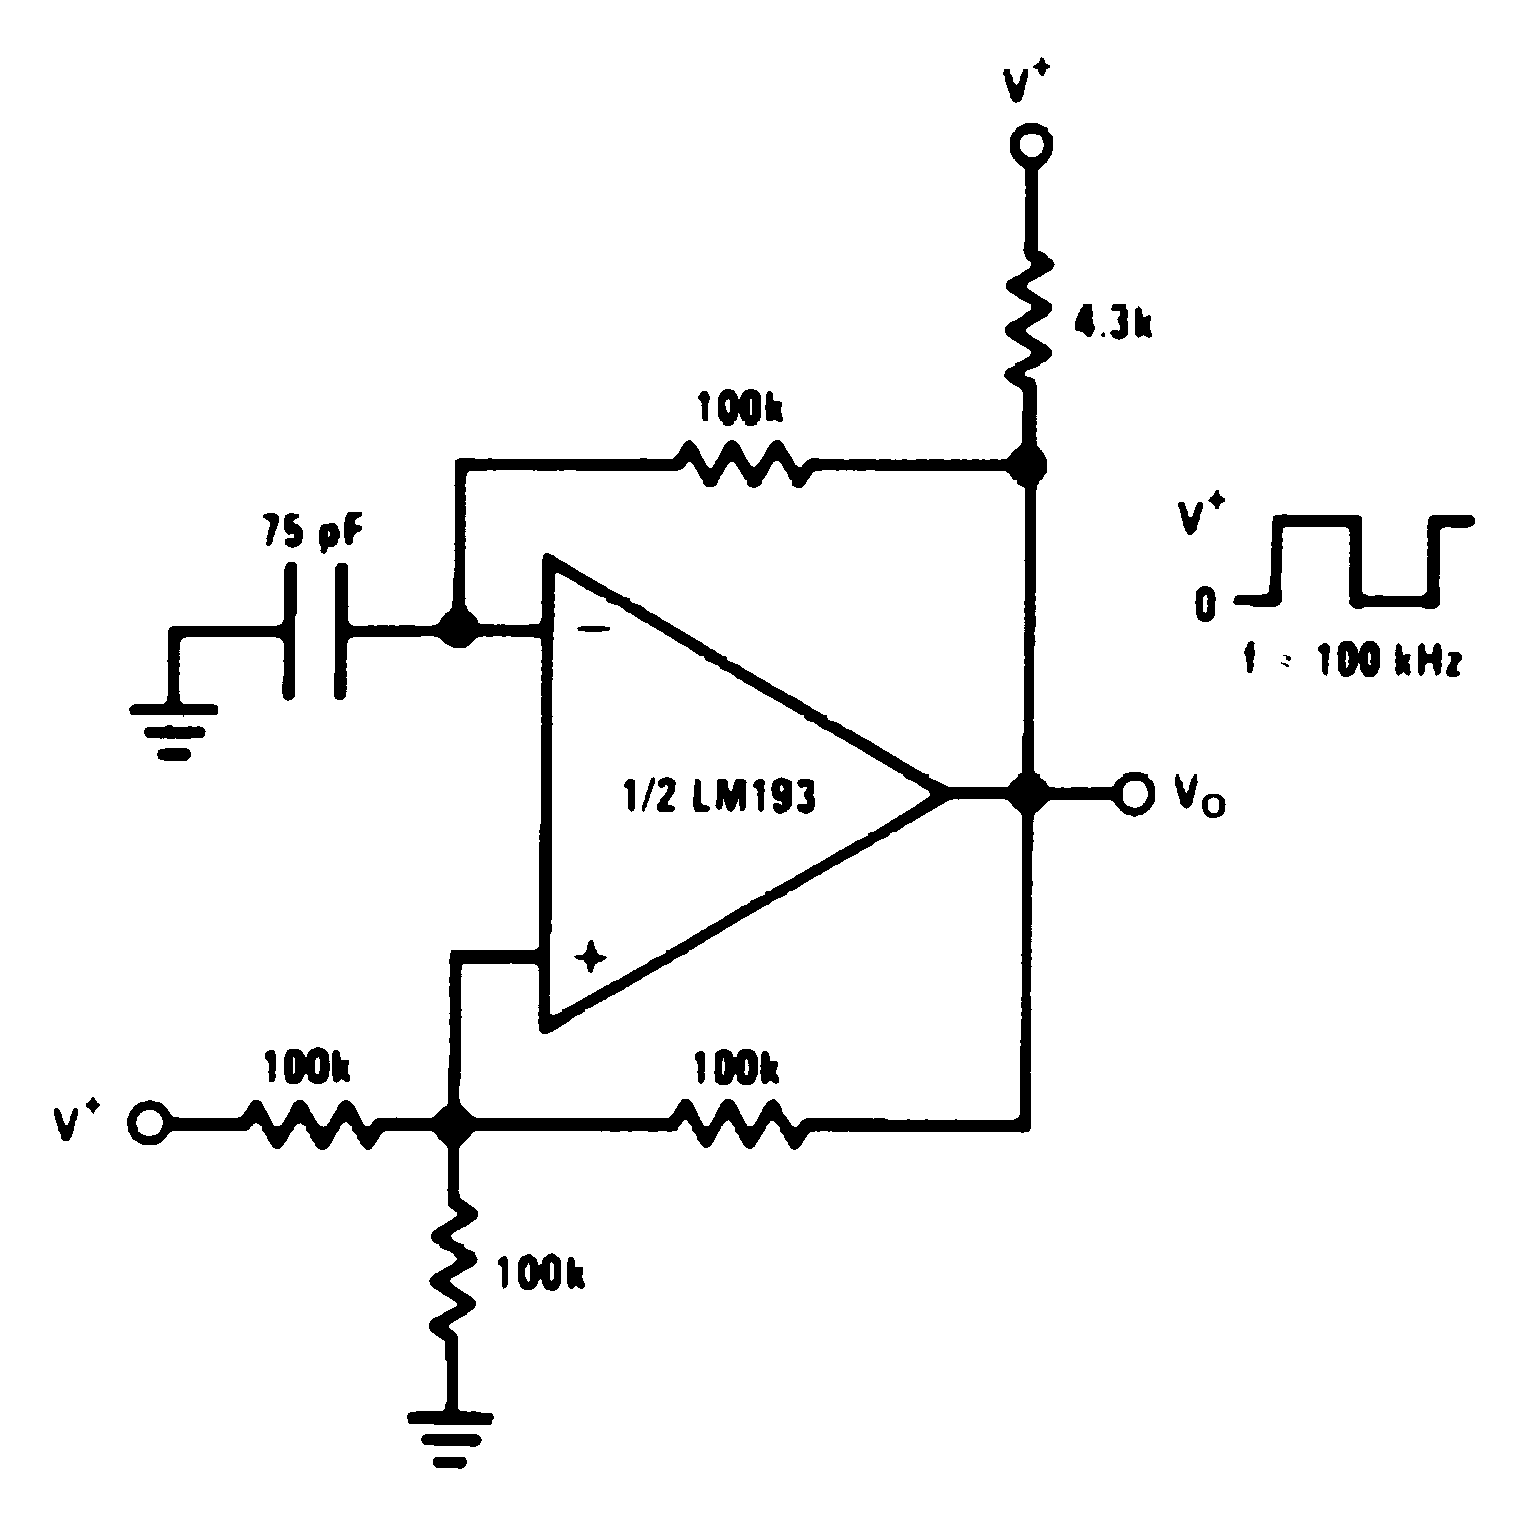 Lm2903 N Figure 1 Basic Bistable Circuit Configuration Using A 555 Timer Lm193 Lm293 Lm393 00570938 17